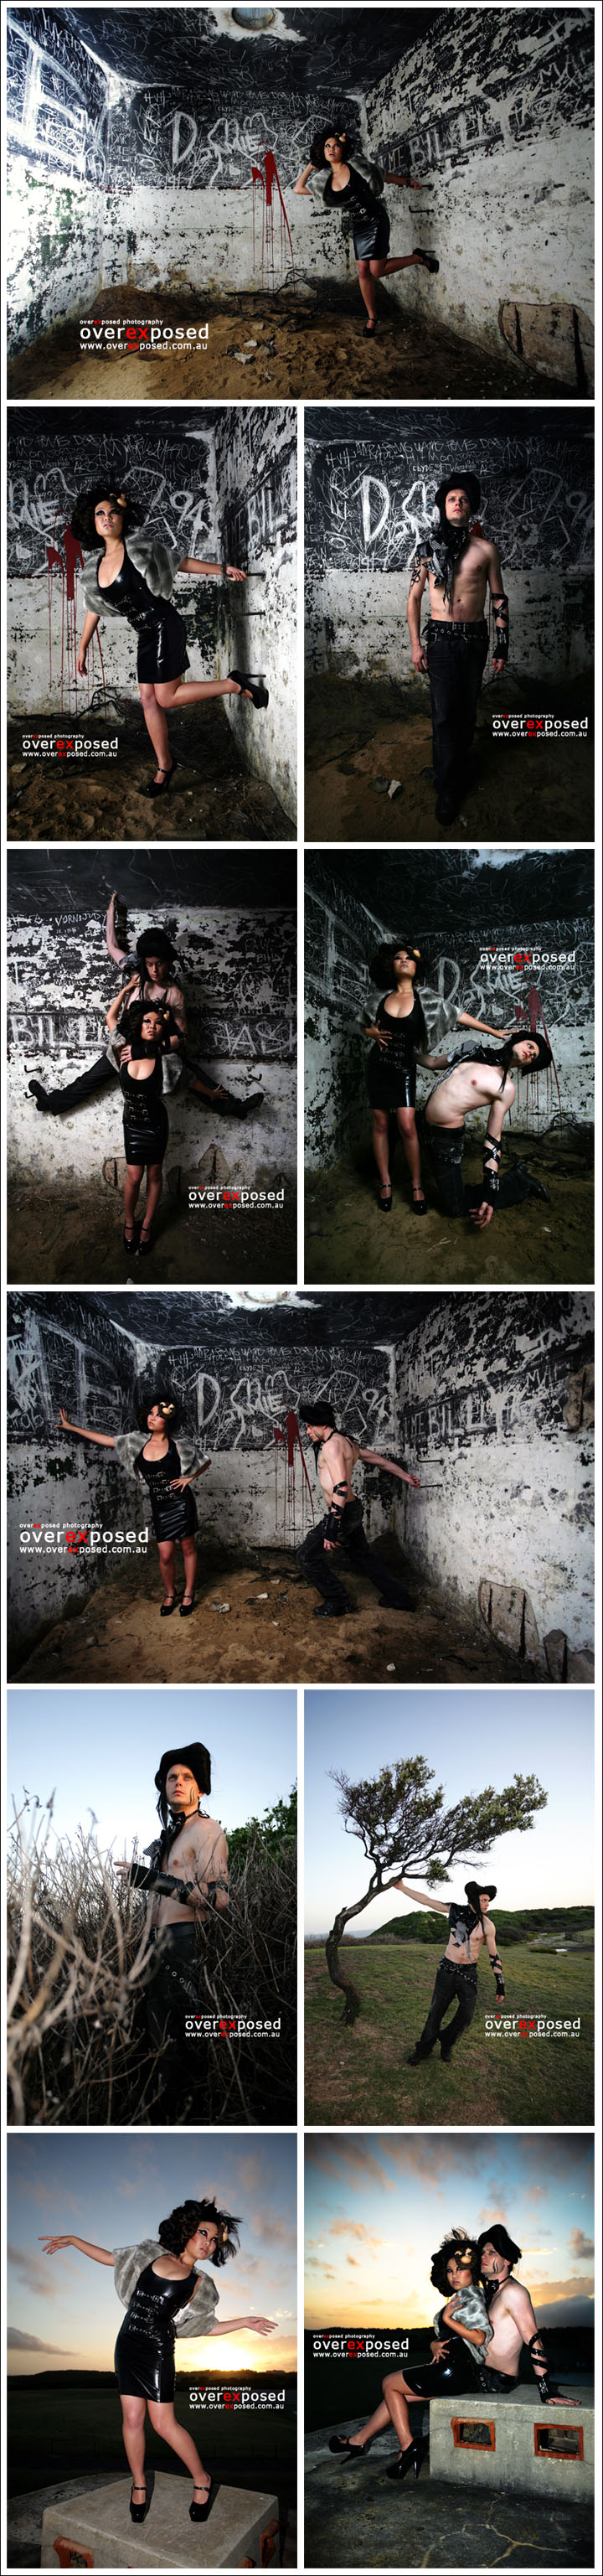 Female and Male model photo shoot of Anqi and Thomas Pullar by overexposed, hair styled by LyndallVile, makeup by LePHUNK Makup Artistry